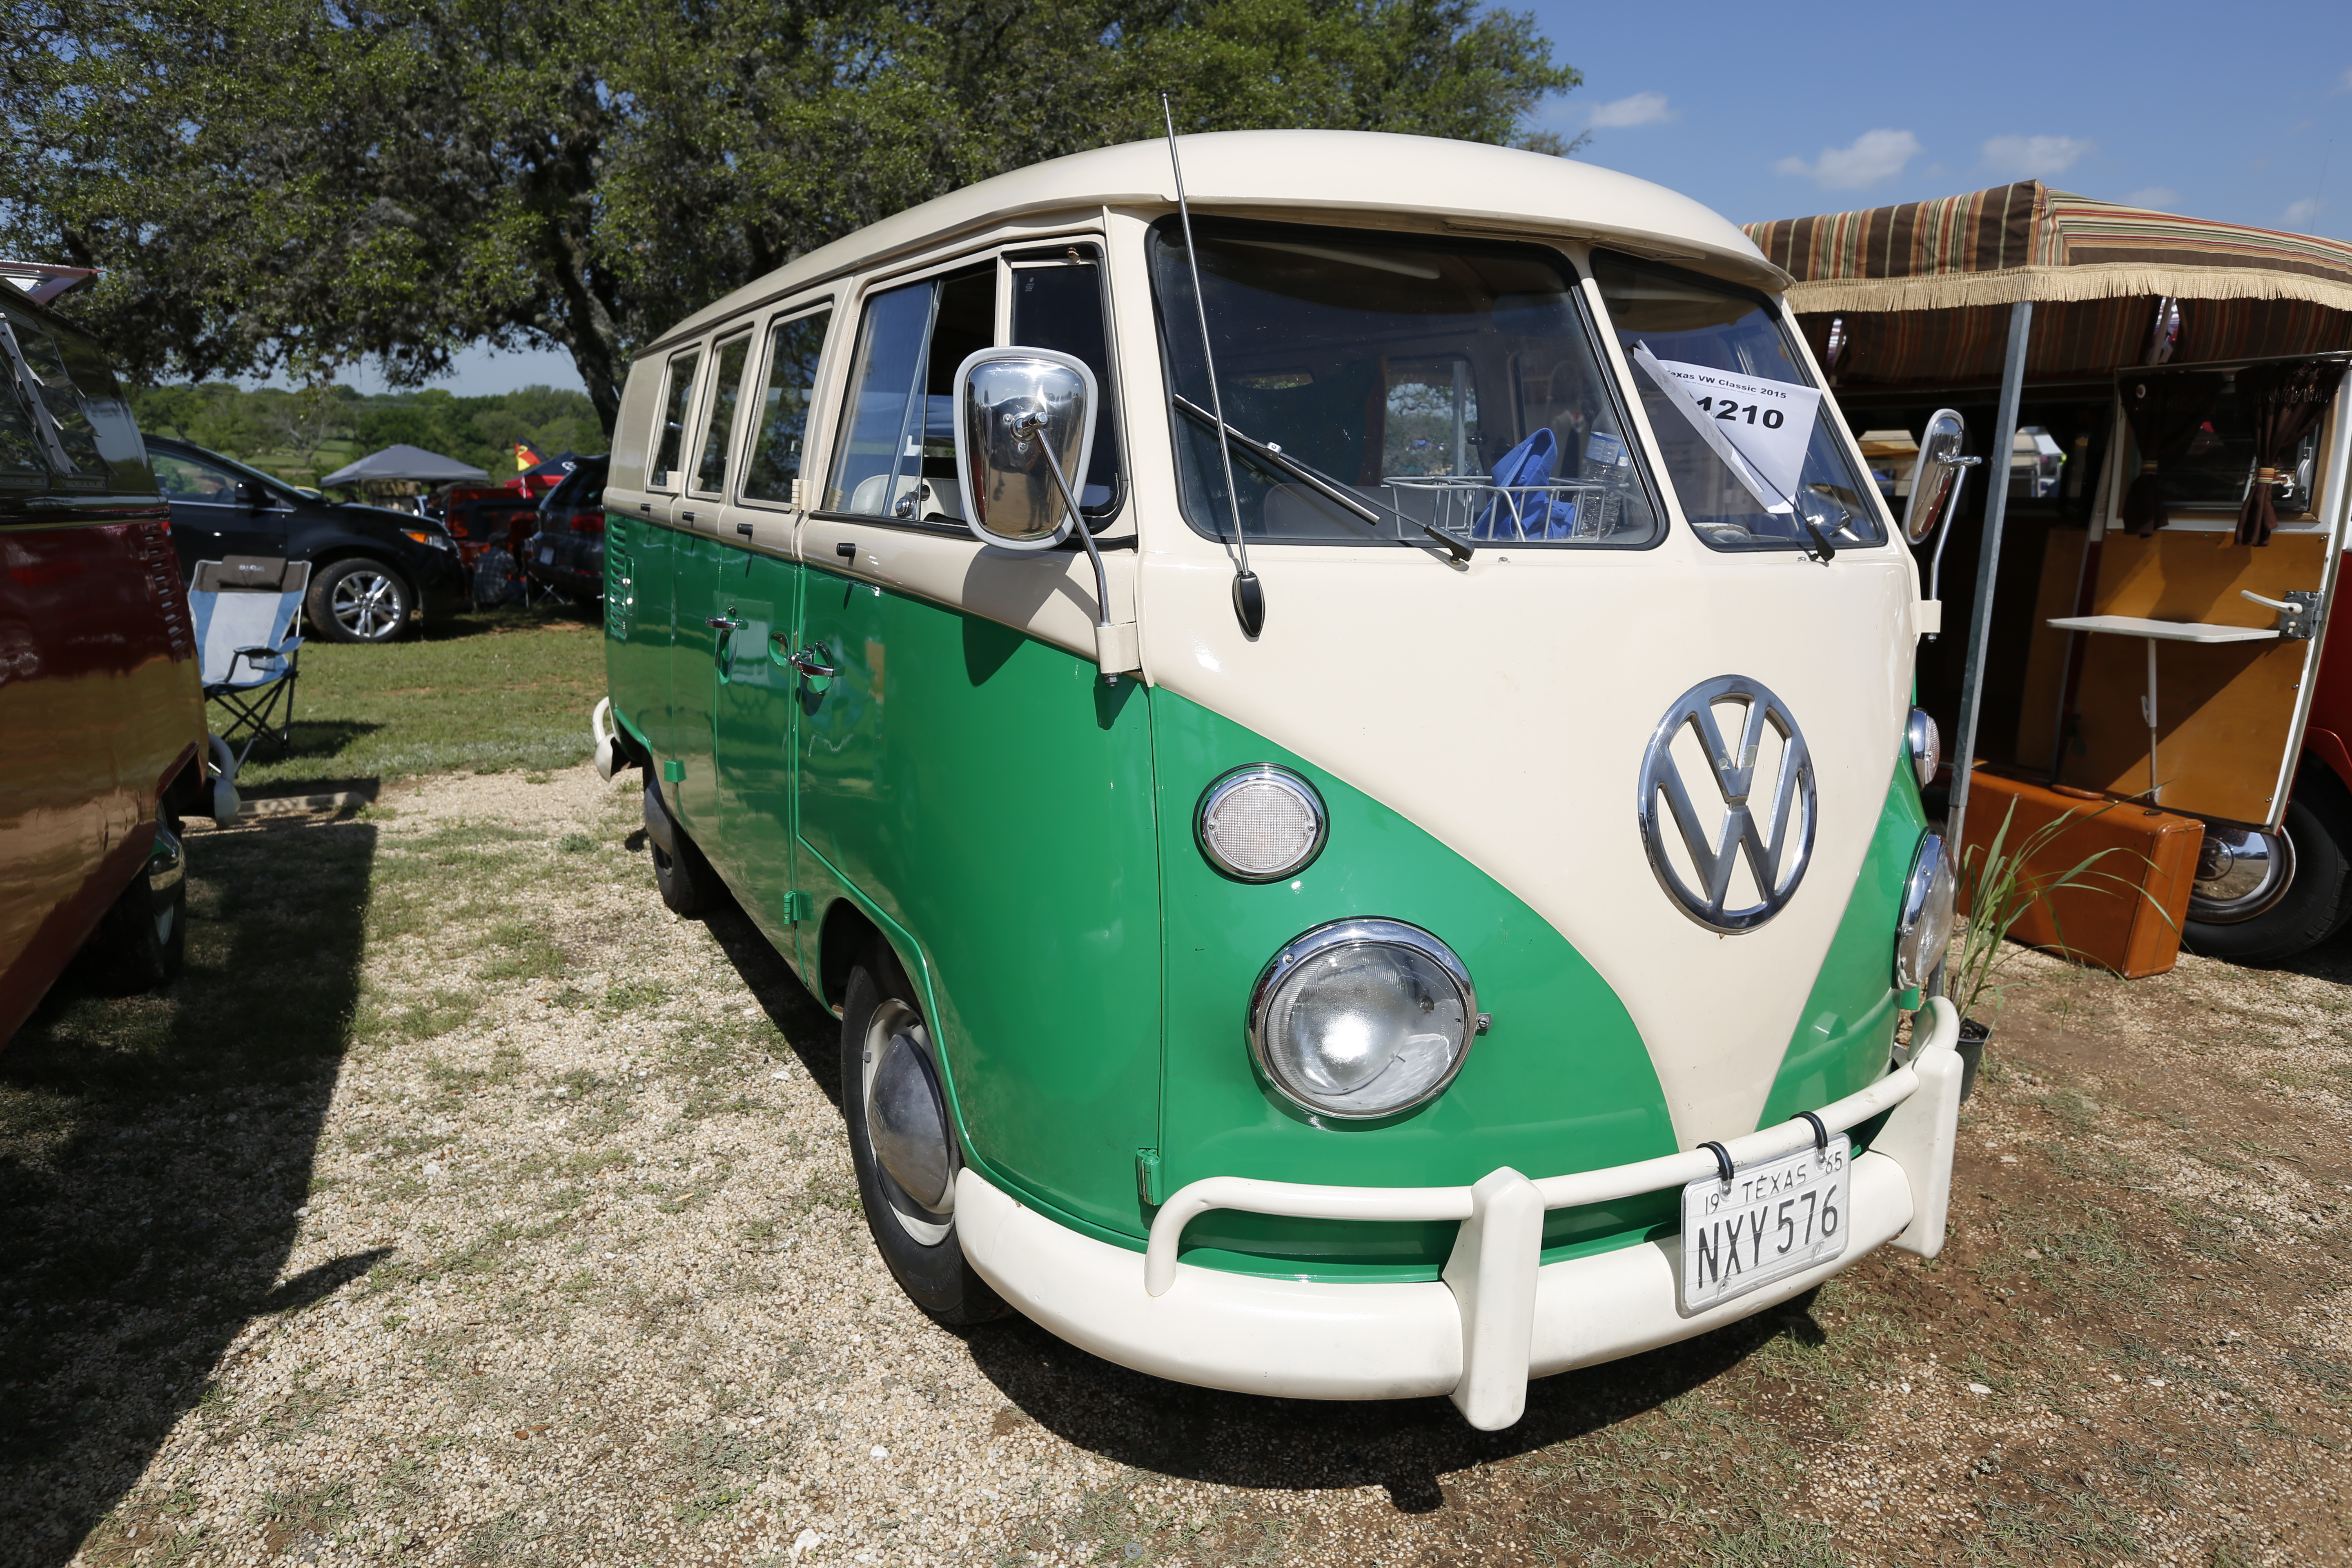 San Tan Vw >> Fletcher (#1210) - Texas VW Classic